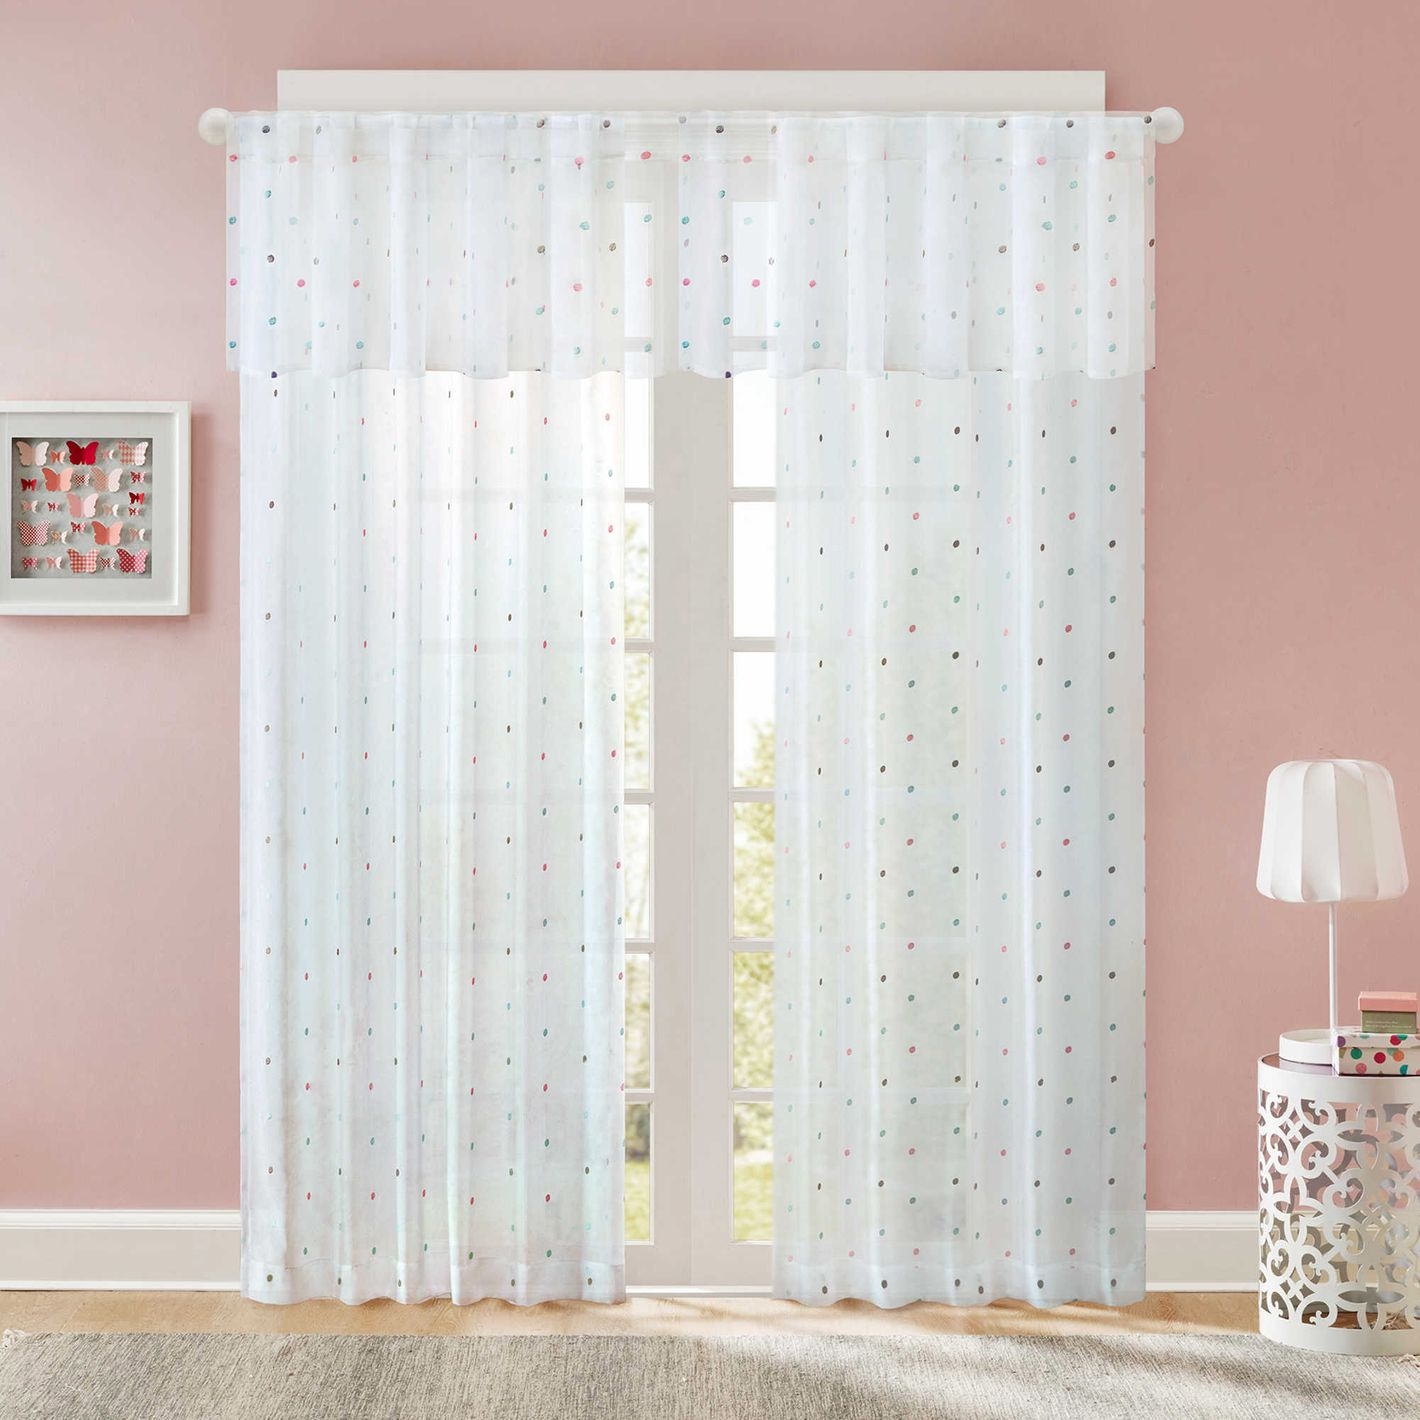 Regency Heights Curtains